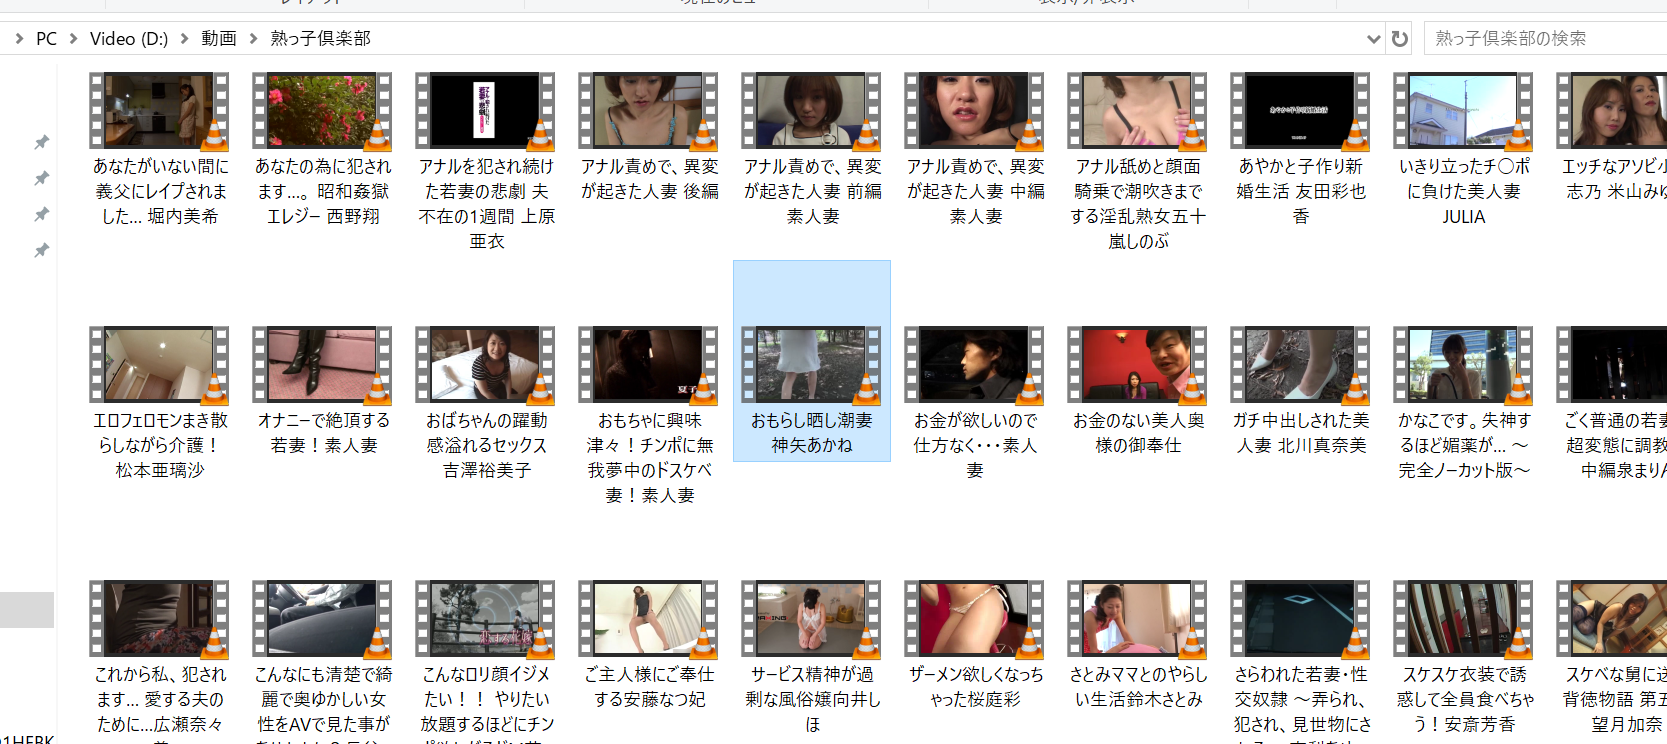 some of the JAV SEX videos I downloaded